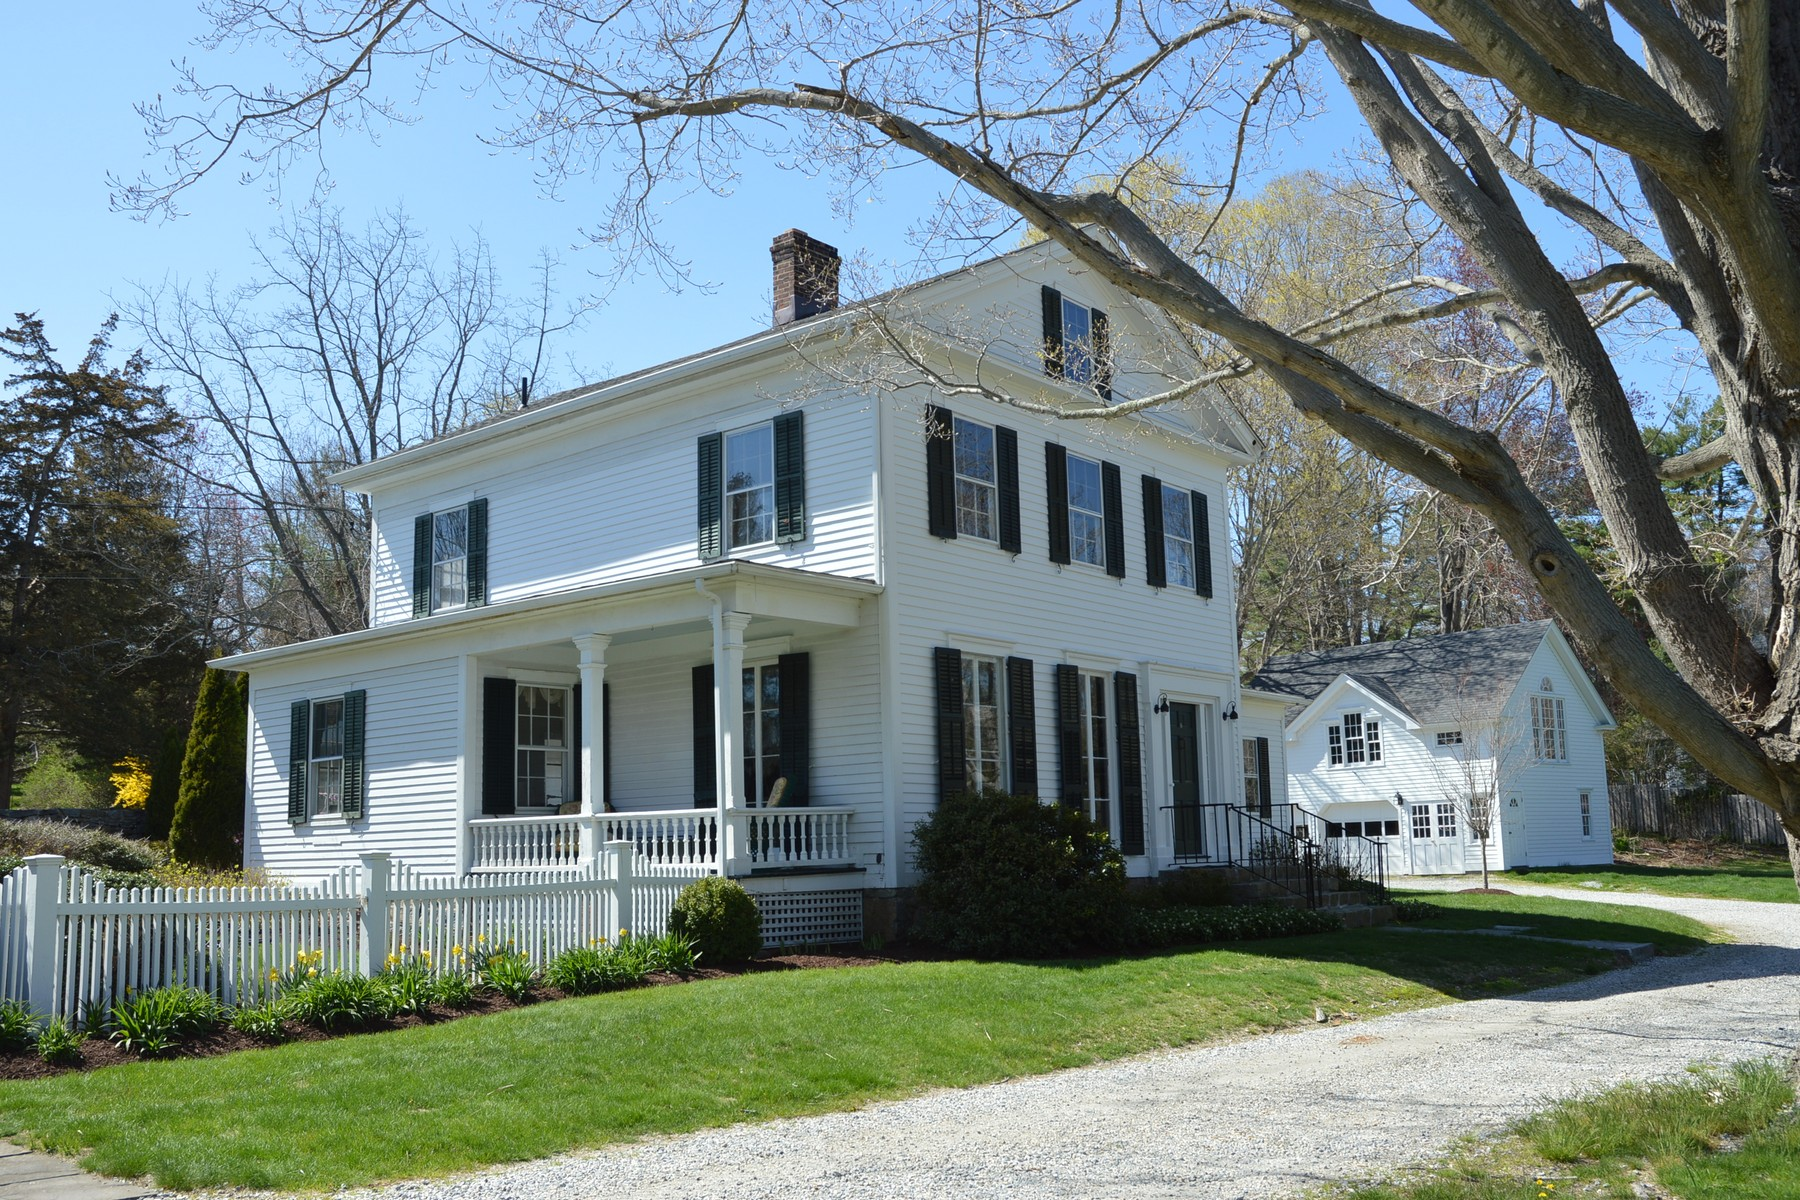 Property For Sale at Circa 1848 Sea Captain's Home